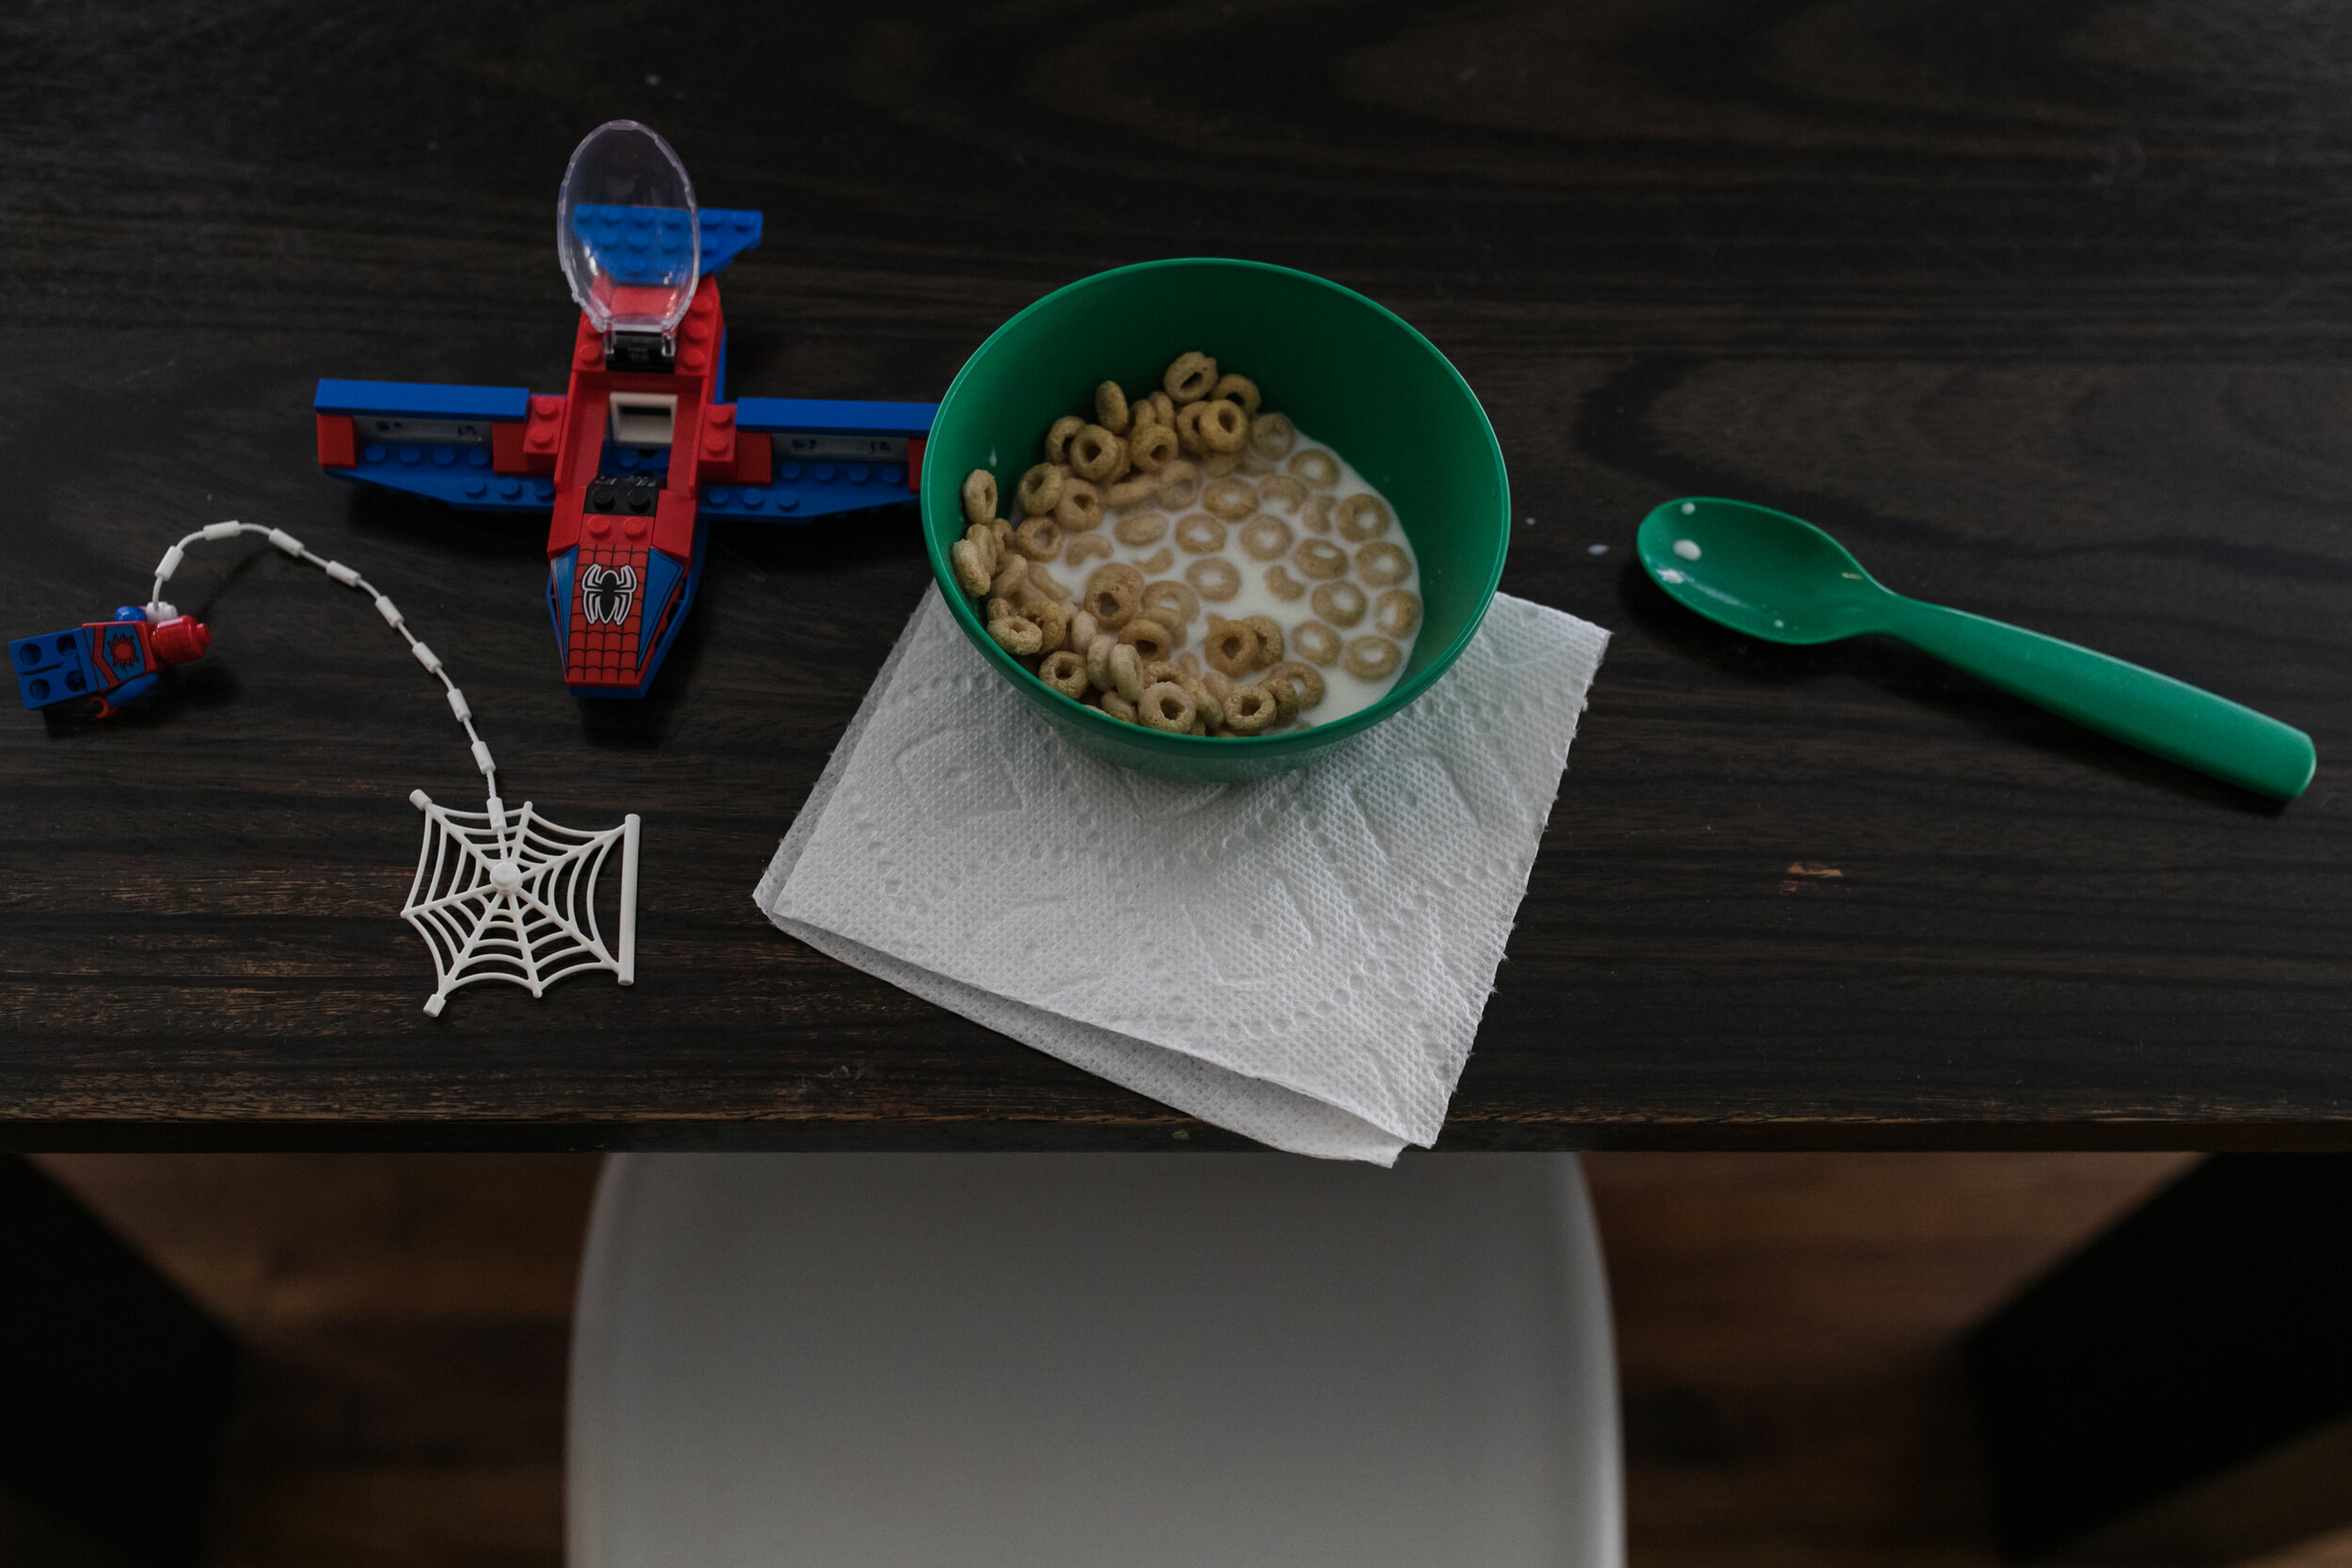 image of a bowl of cereal and spiderman lego toys from a day in the life photography session